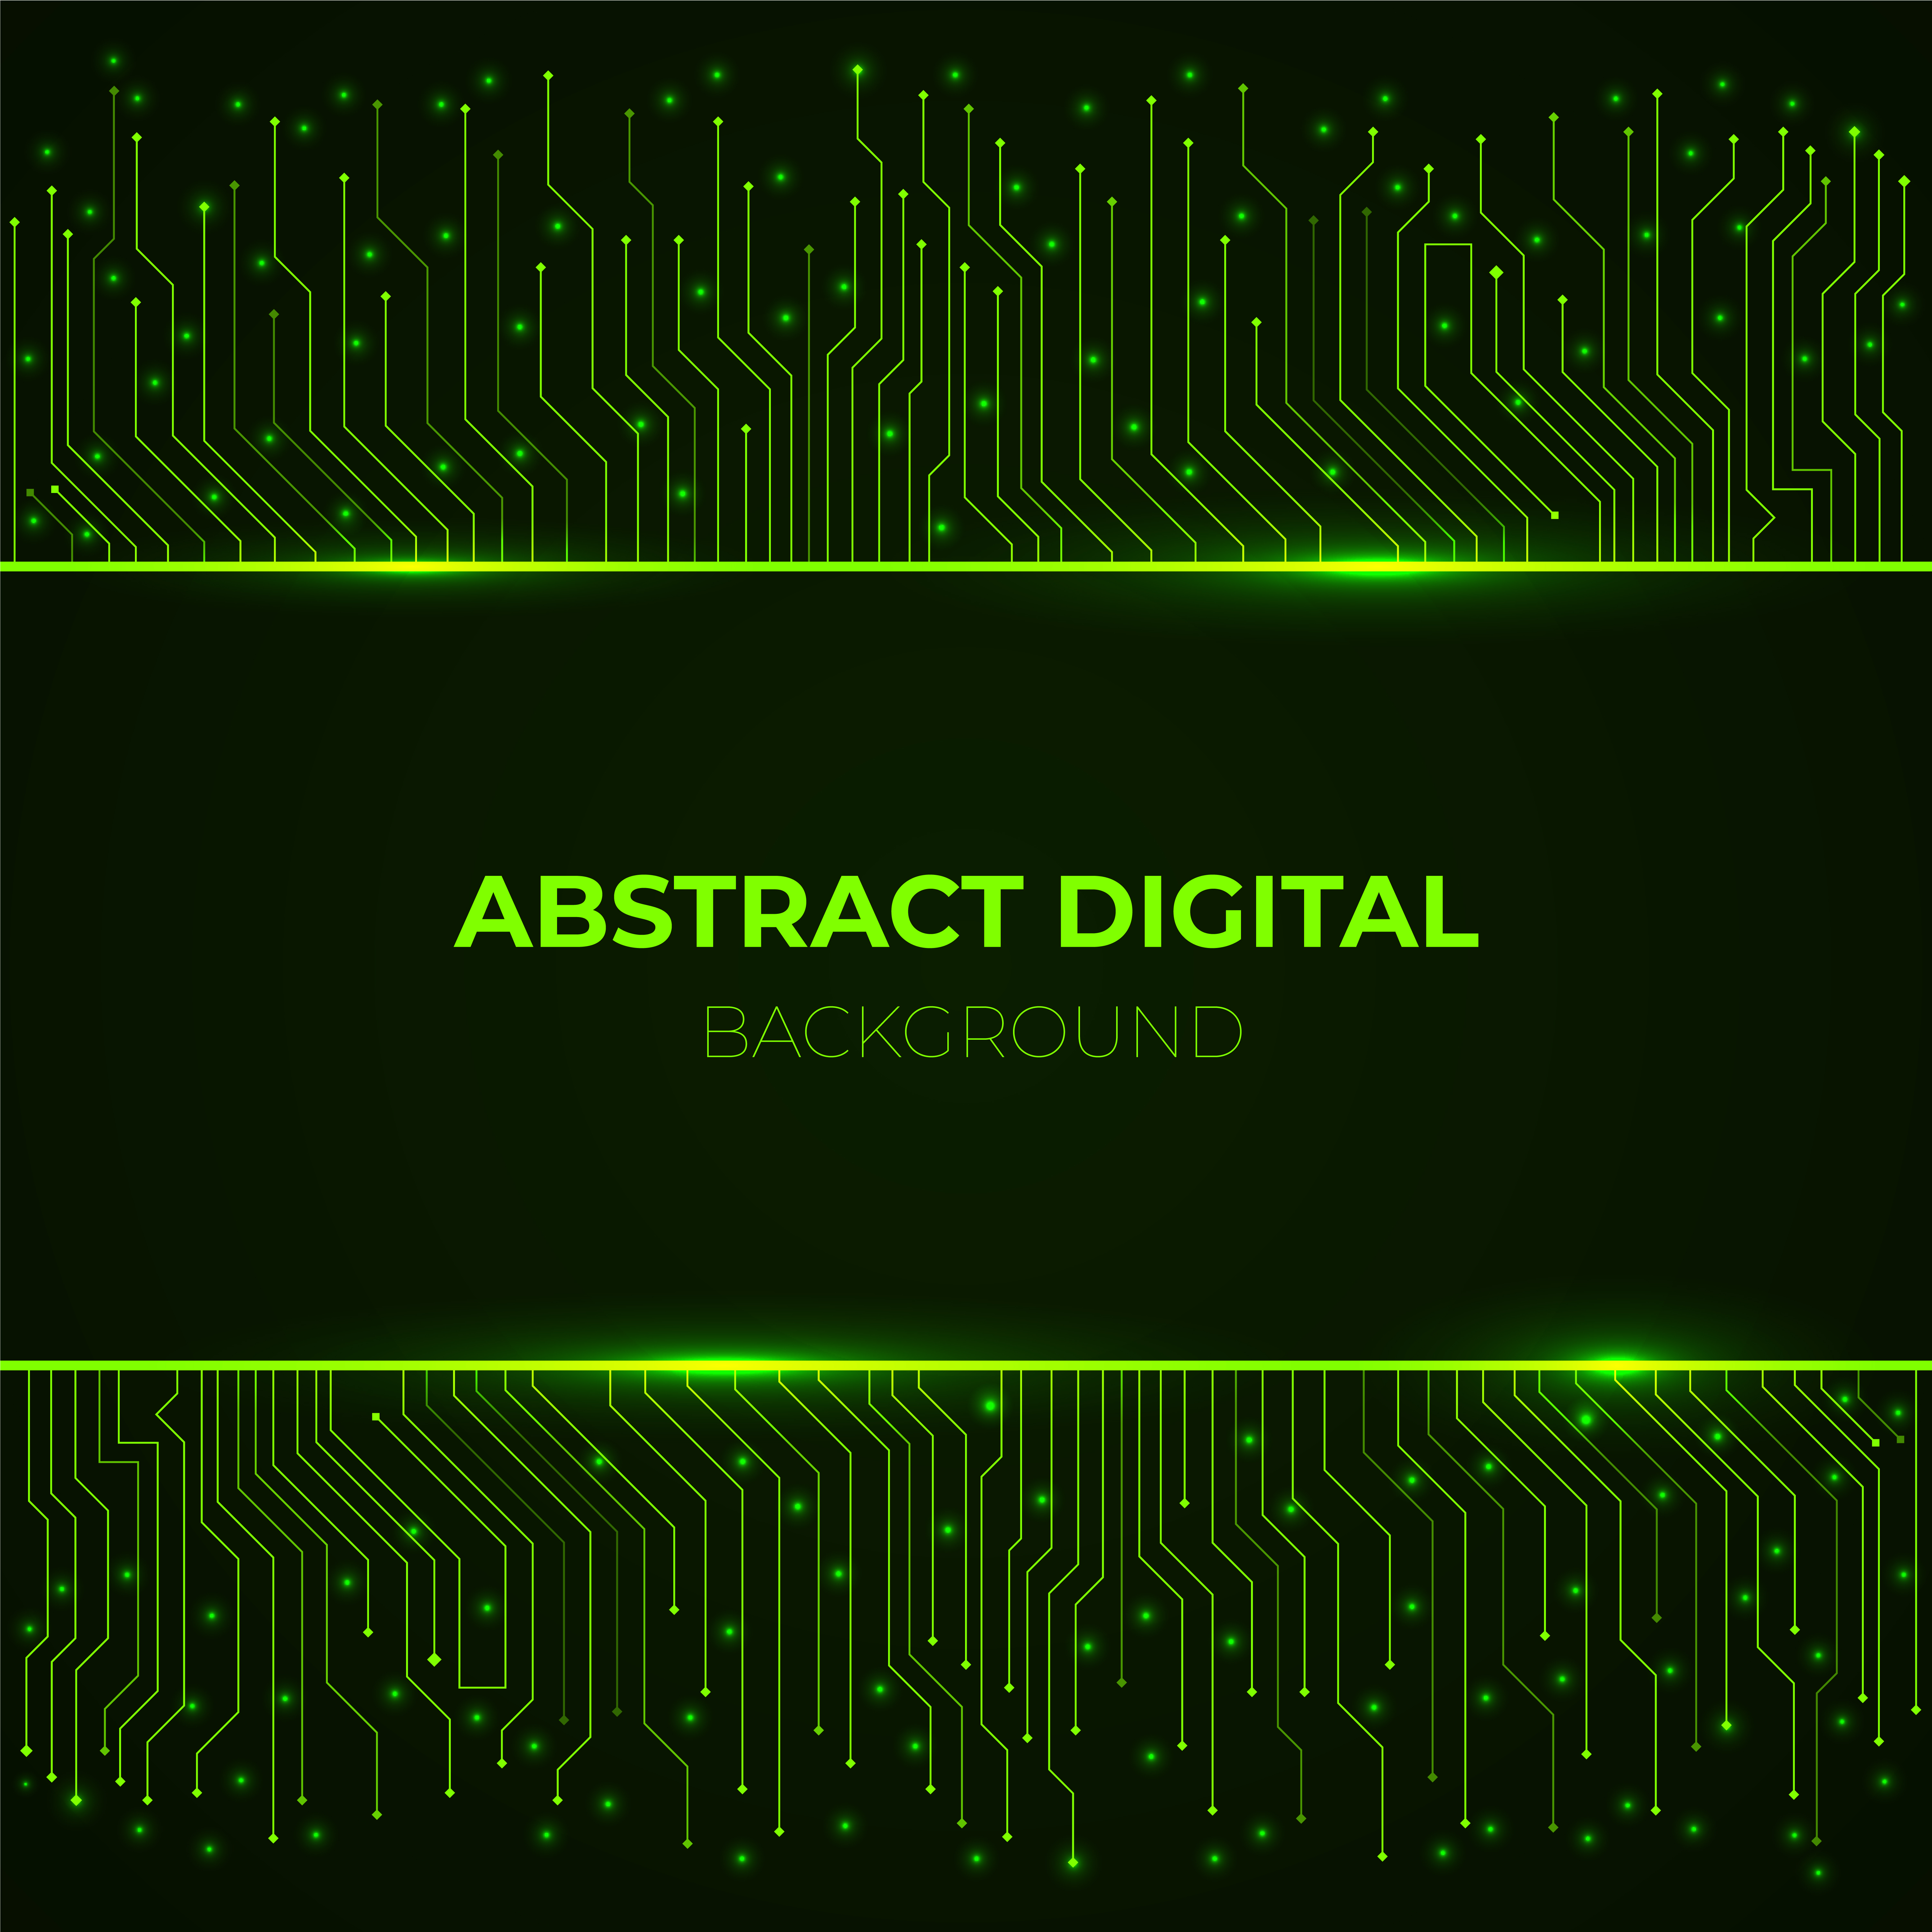 High Tech Background From Computer Green Glowing Neon Circuit Board Lines Download Free Vectors Clipart Graphics Vector Art